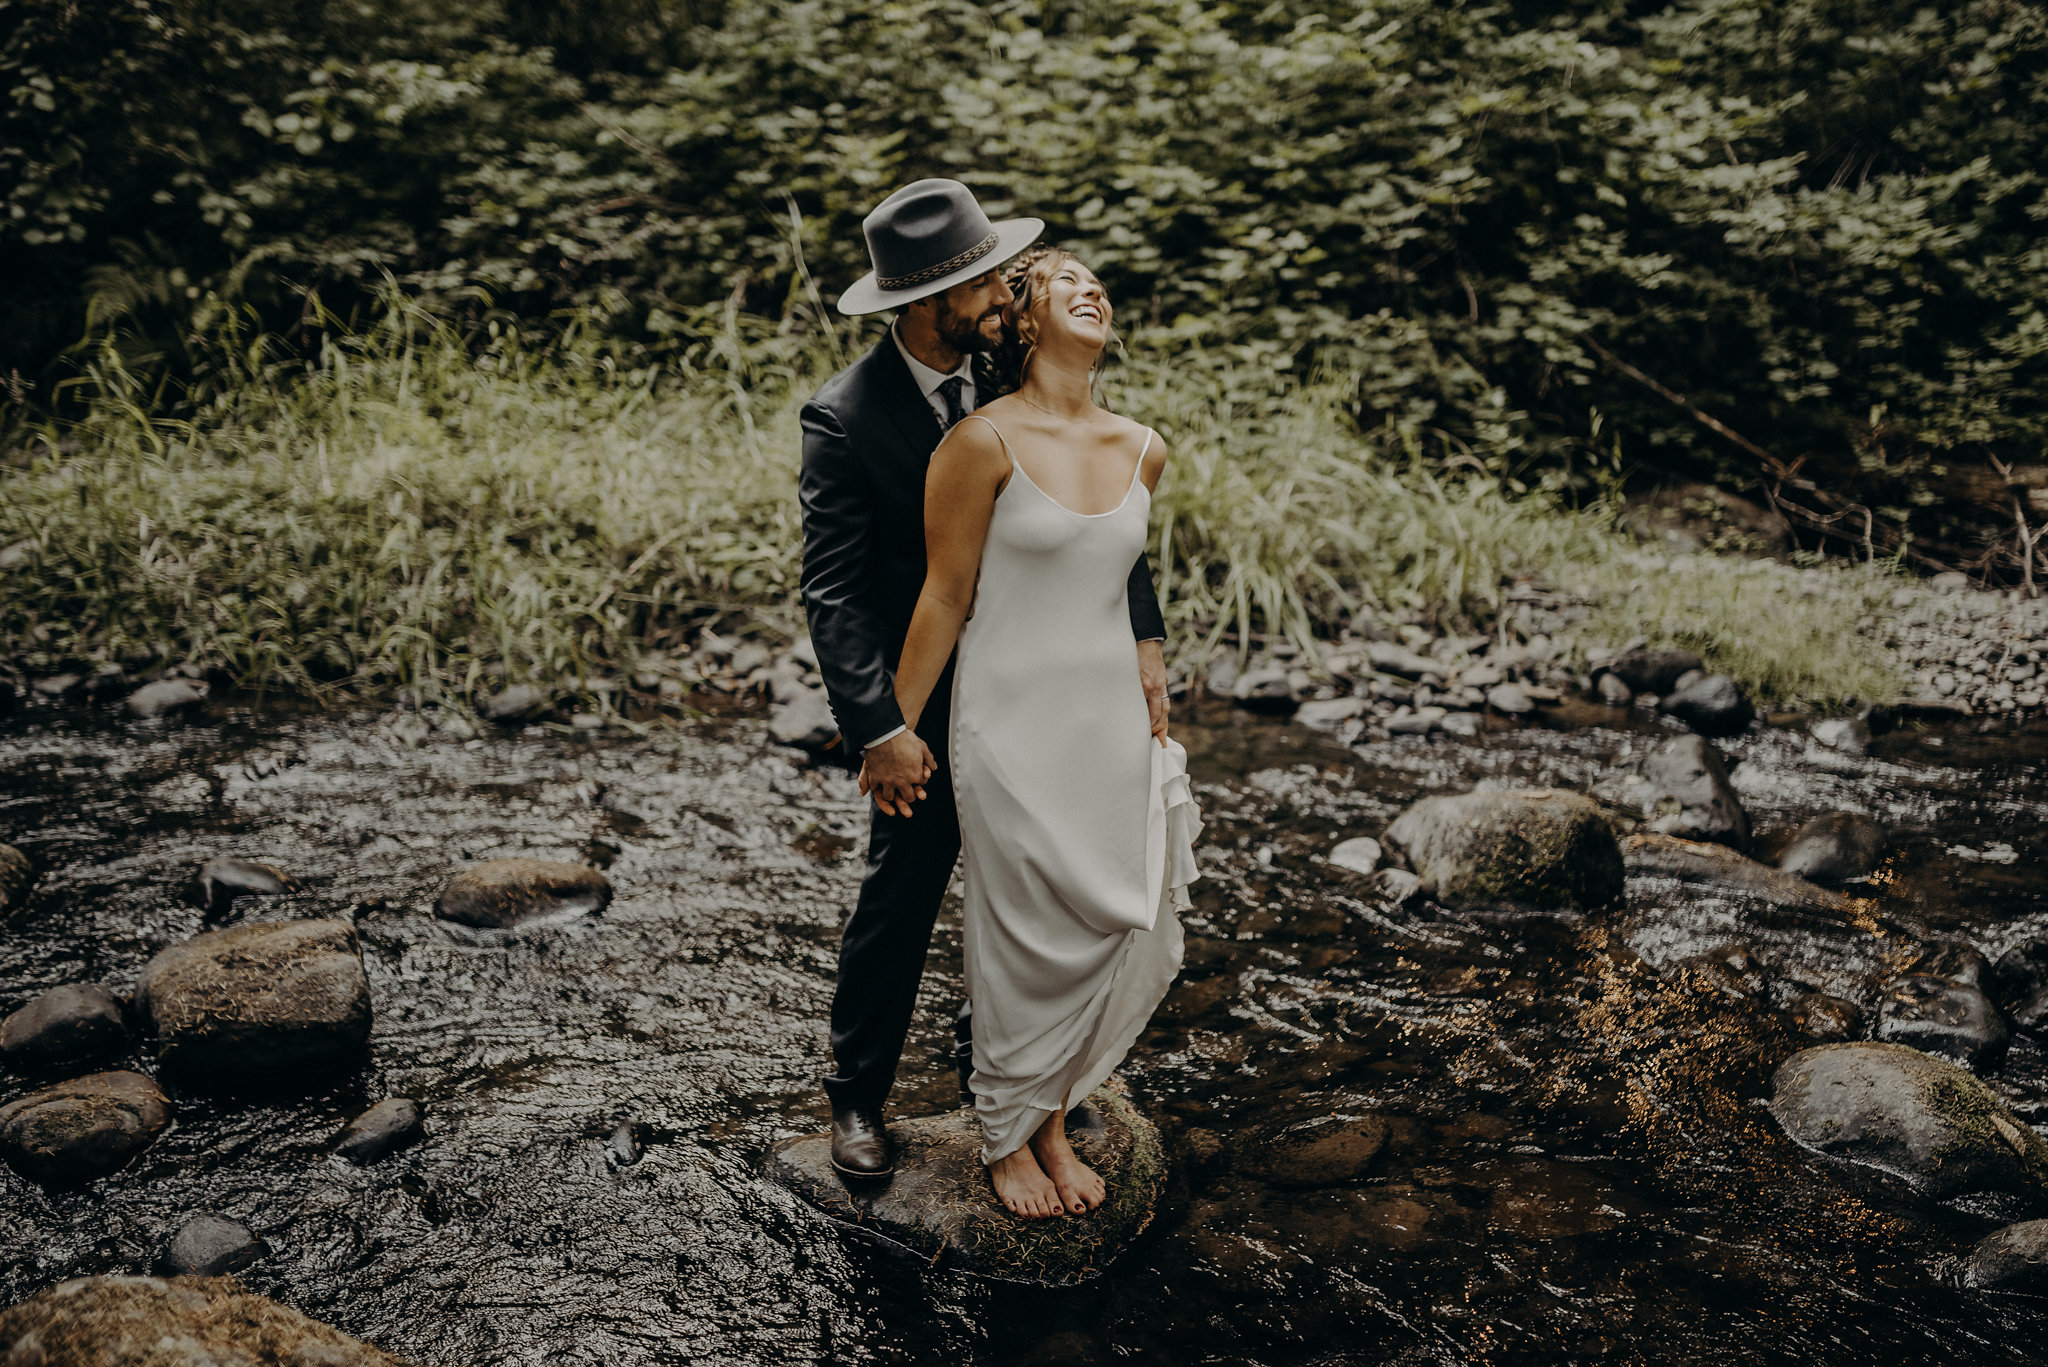 Isaiah+TaylorPhotography-CampColtonWedding,Oregon46.jpg